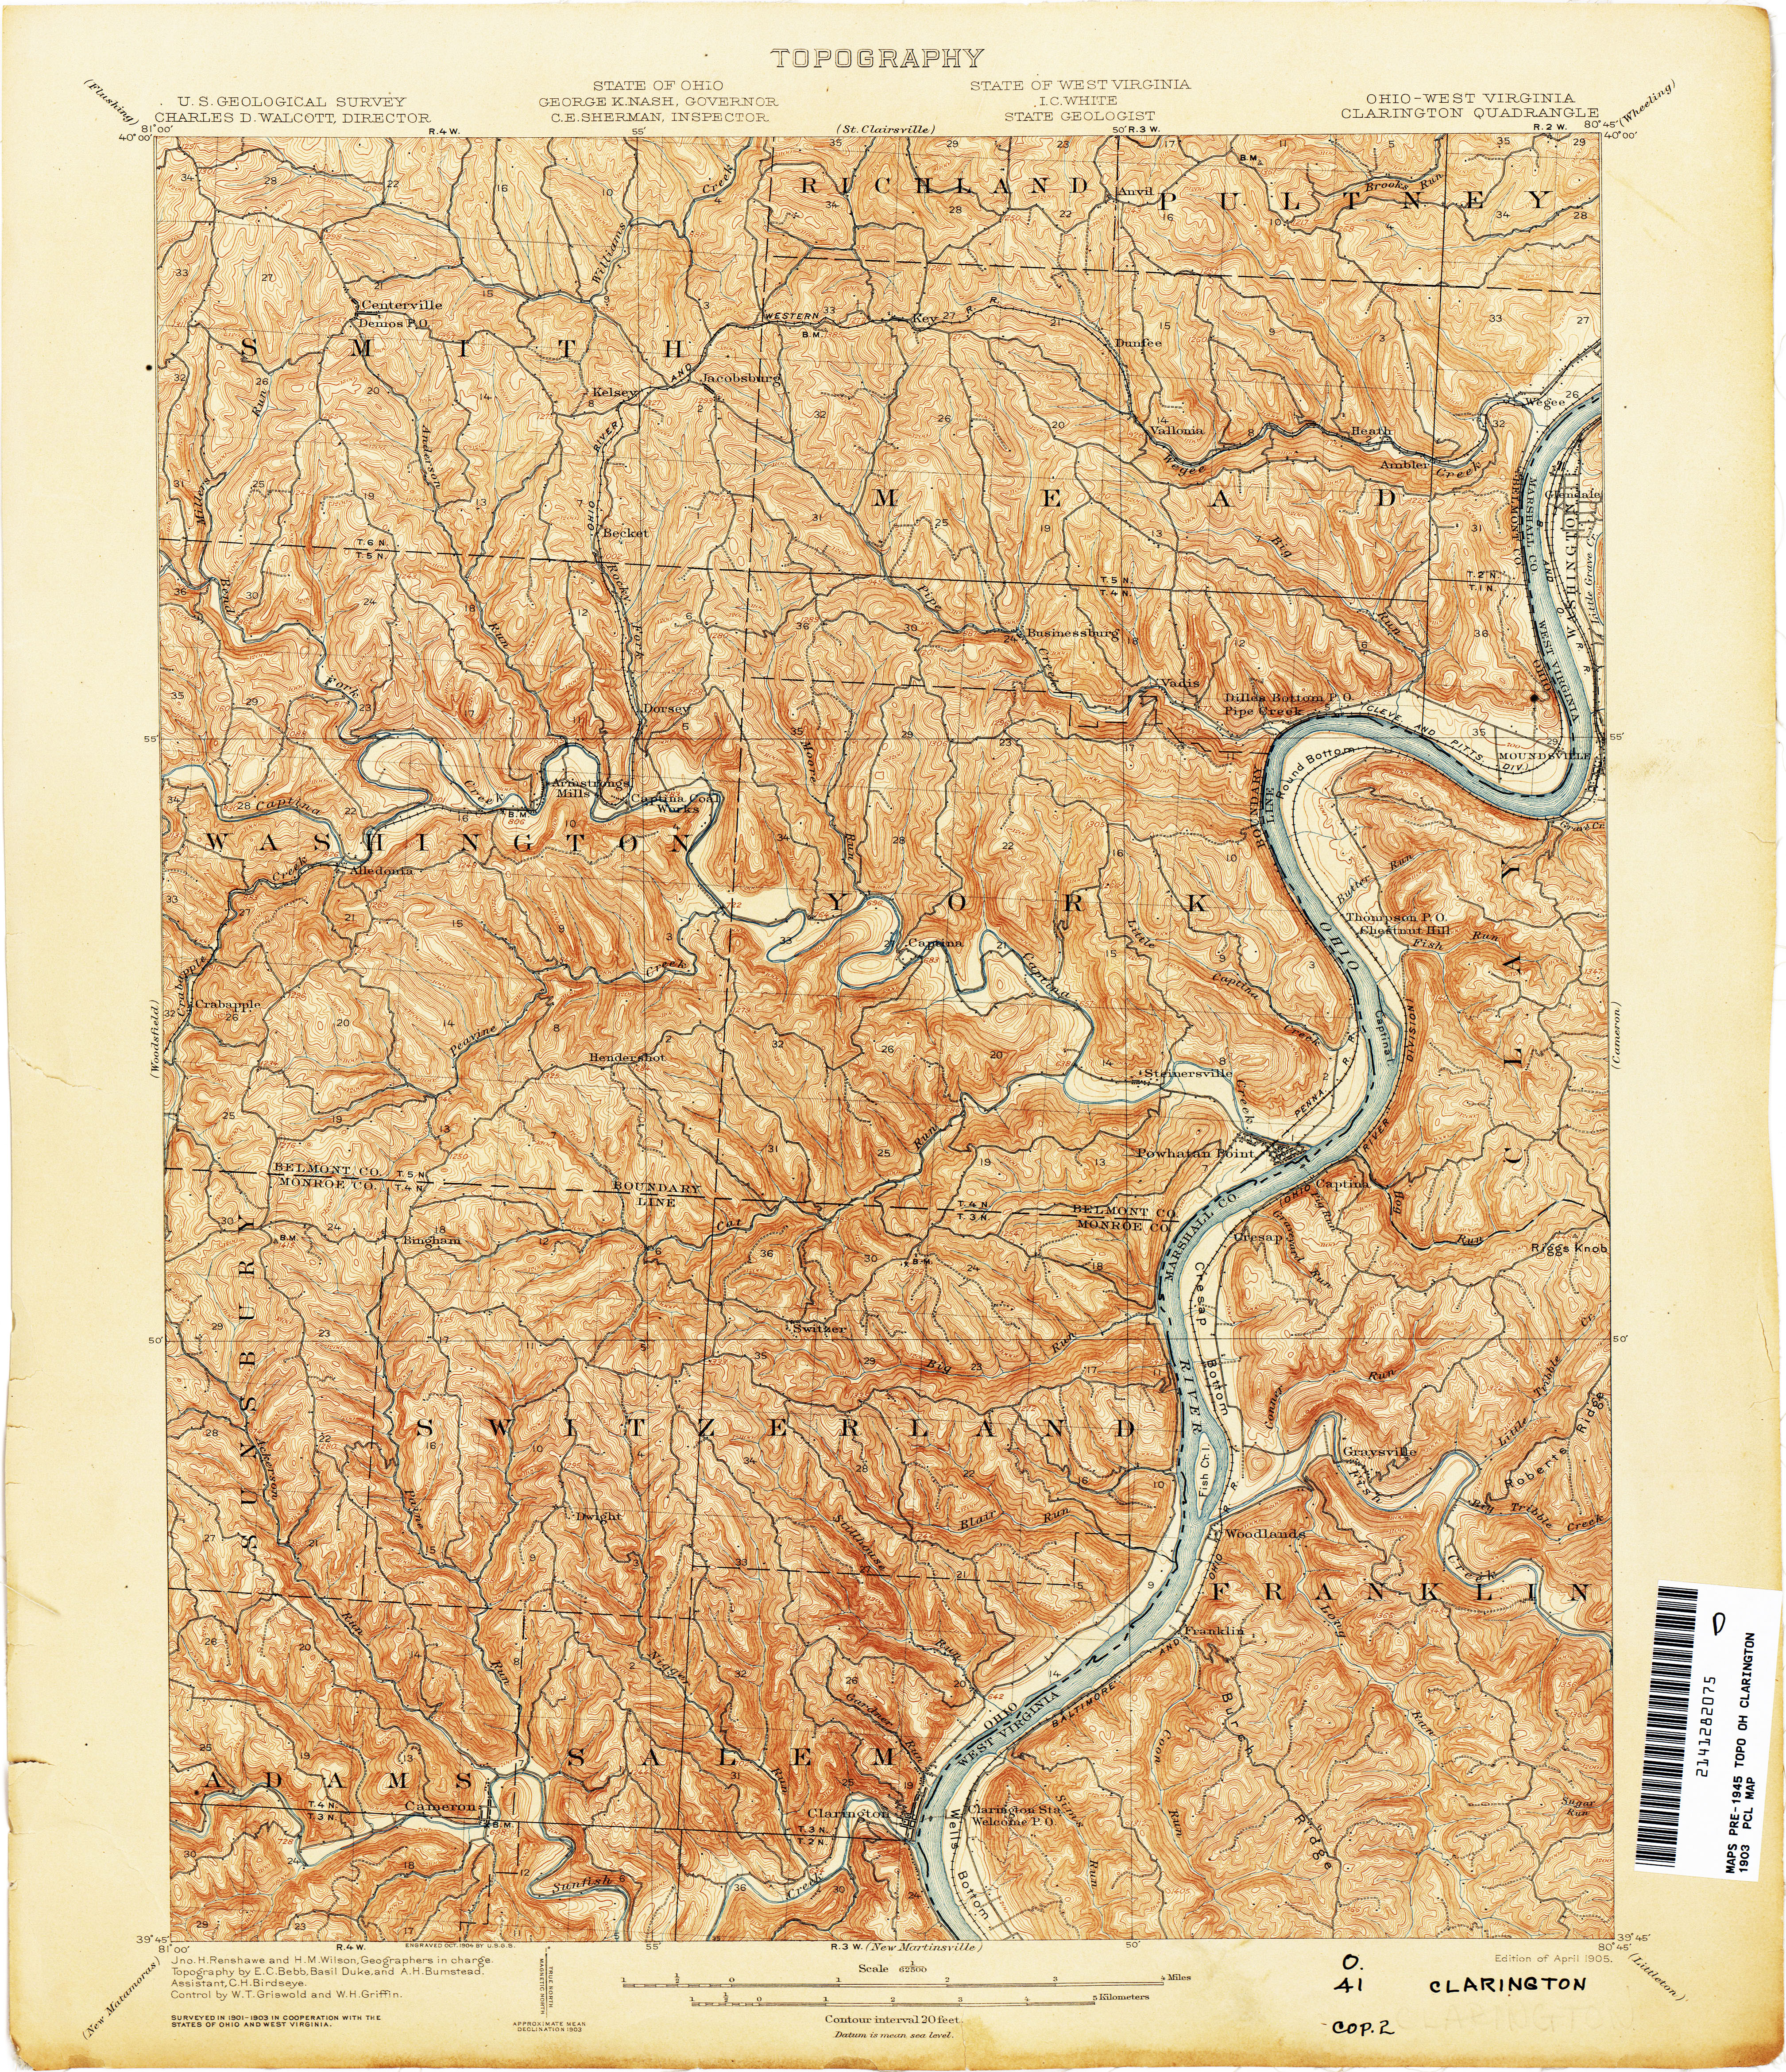 USGS Quad Maps To Belmont County Engineer - Usgs quad maps